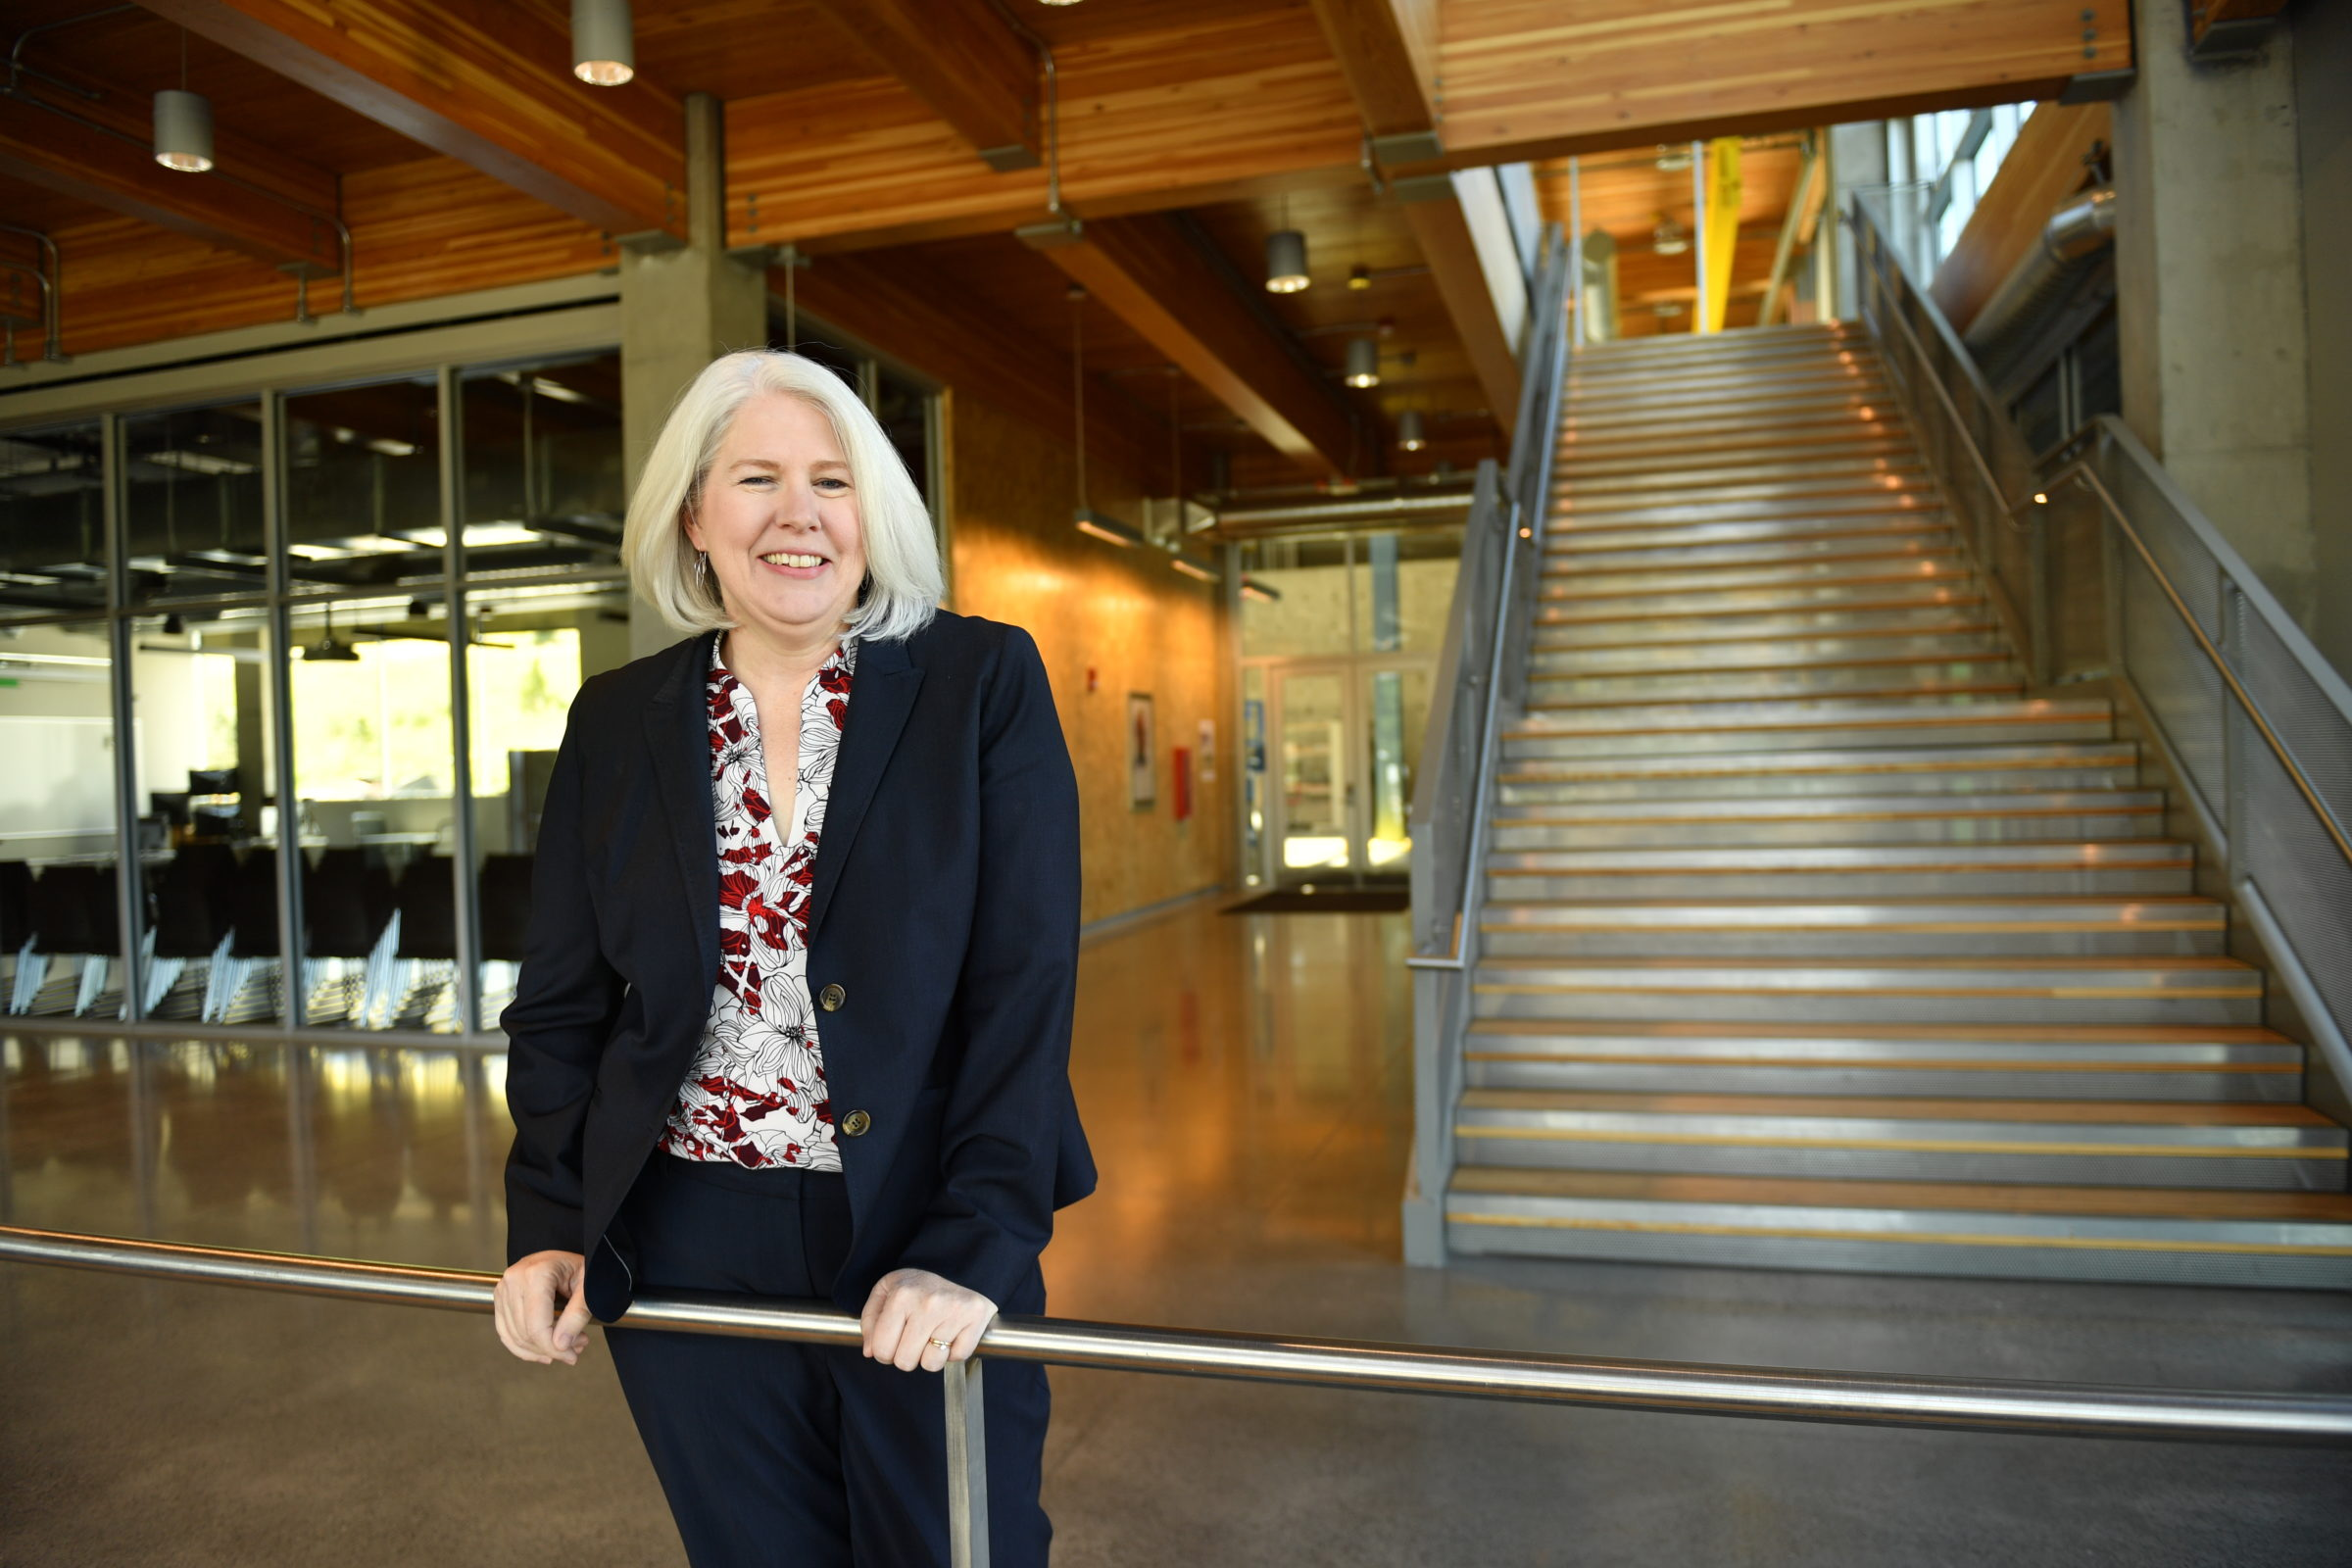 Mary Rezac is the new dean of Washington State University's Voiland College of Engineering and Architecture.